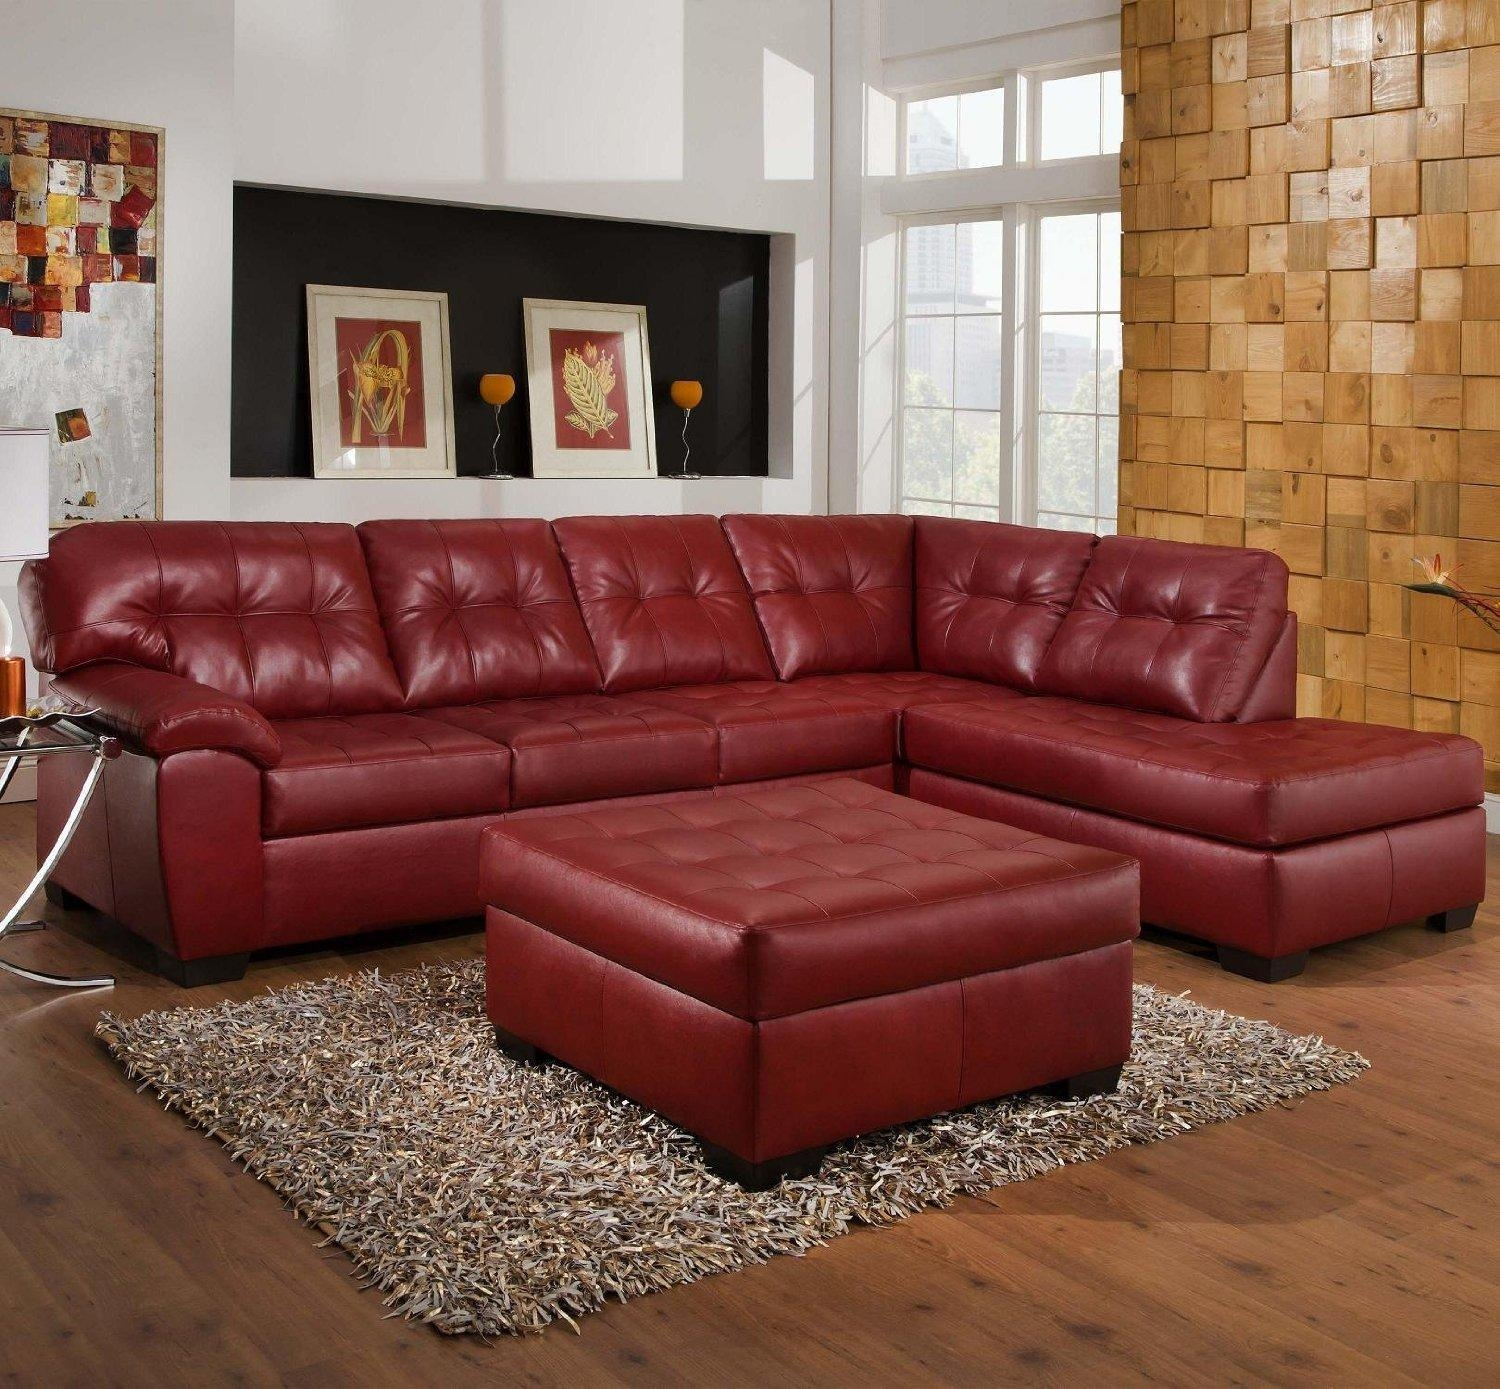 Red Leather Couches Decor : Stylish Red Leather Couches – Home Inside Dark Red Leather Sofas (View 4 of 20)